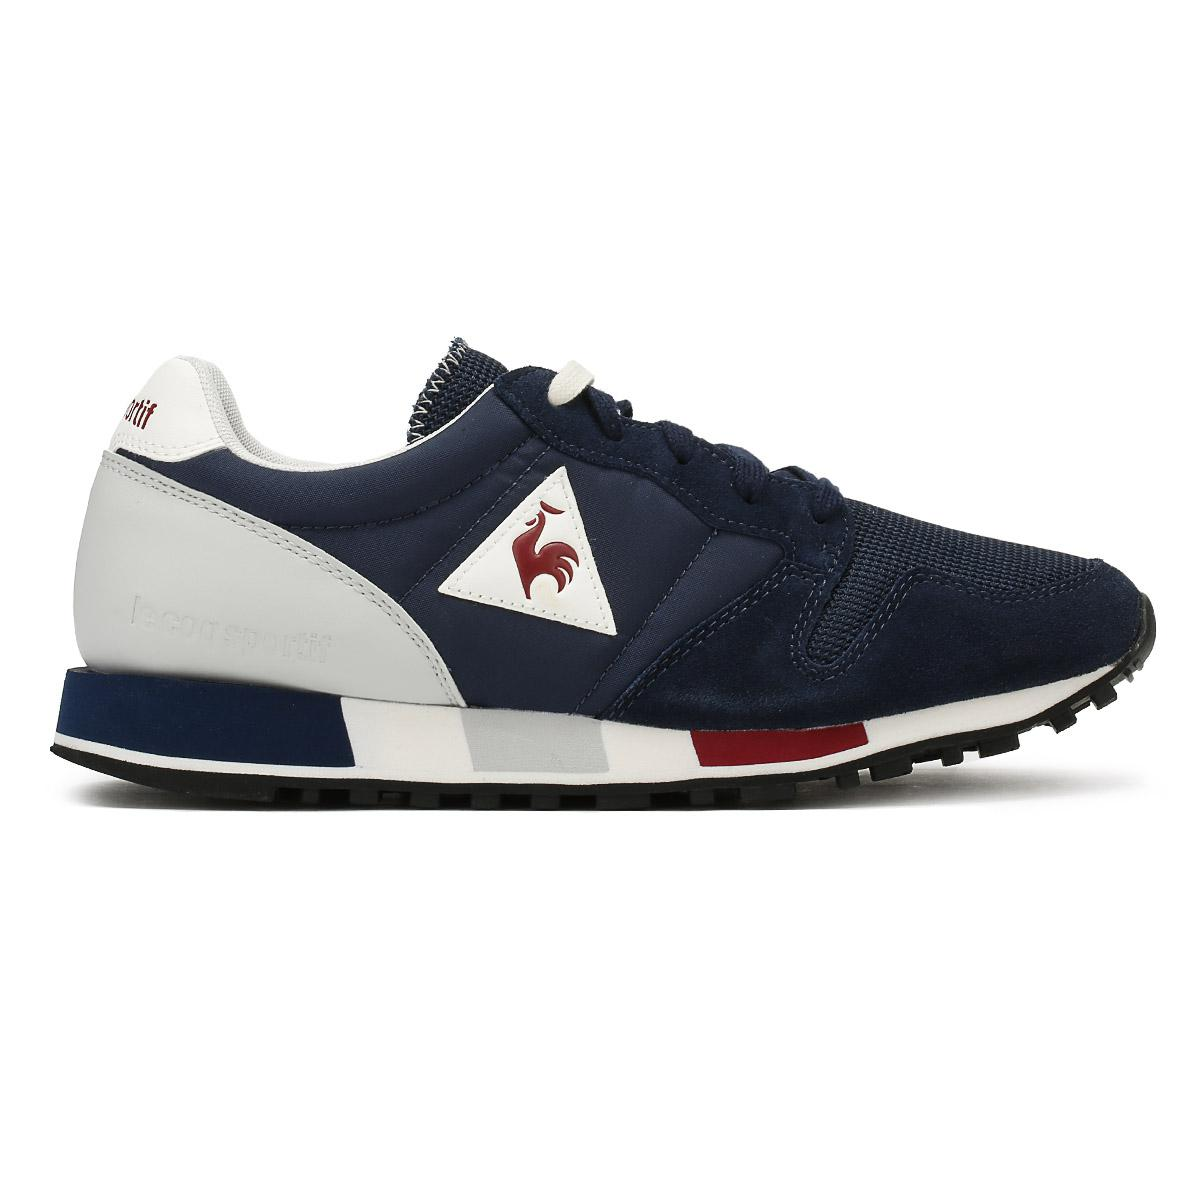 6d3bc5dccda8 Lyst - Le Coq Sportif Mens Dress Blue Omega Nylon Trainers in Blue ...